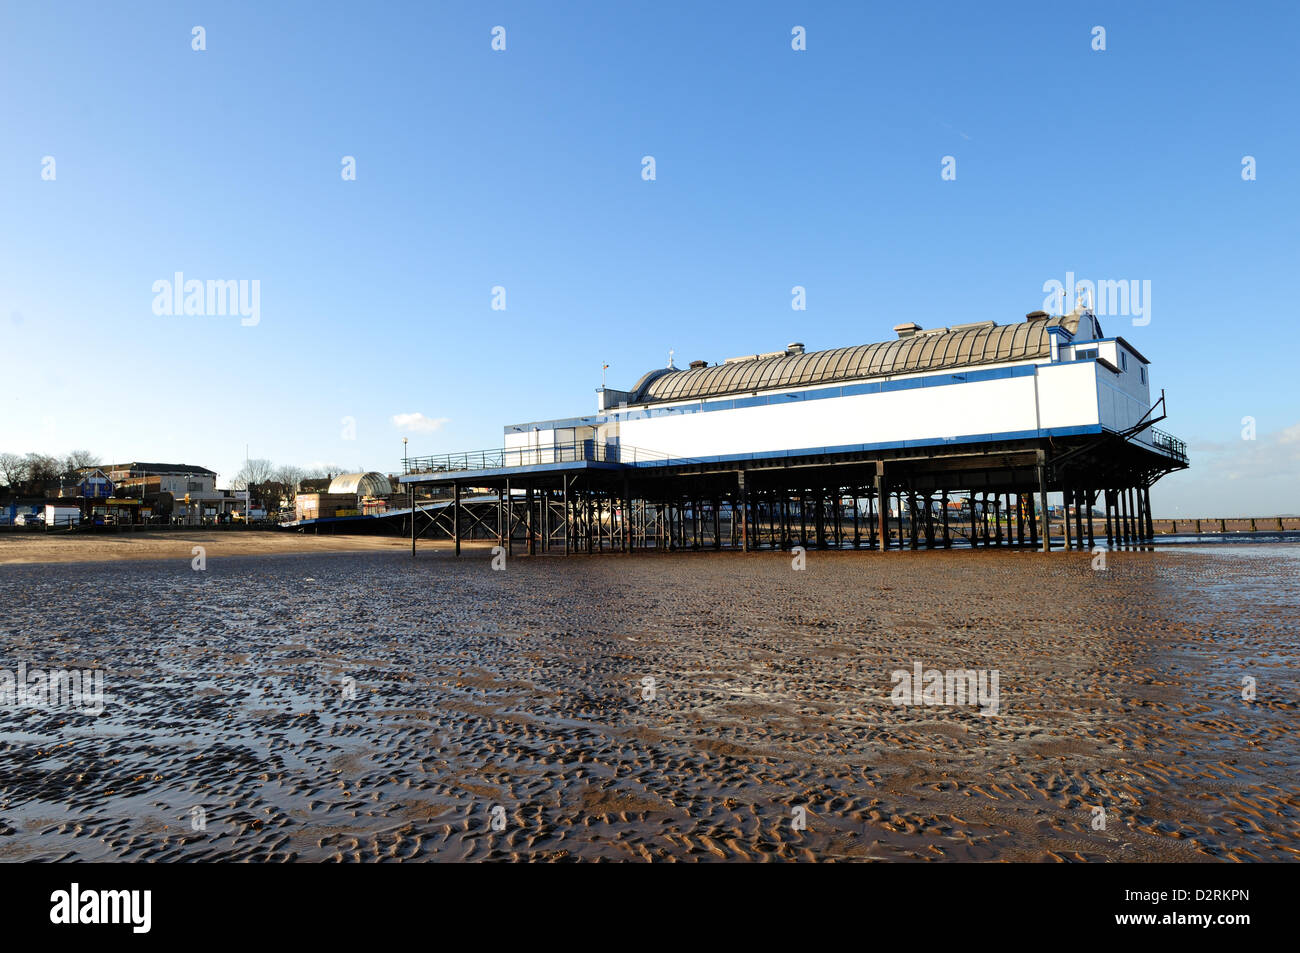 31st January 2013. Cleethorpes Pier, North East Lincolnshire, UK. The 335ft (102m) Pier opened in 1873 and is due - Stock Image